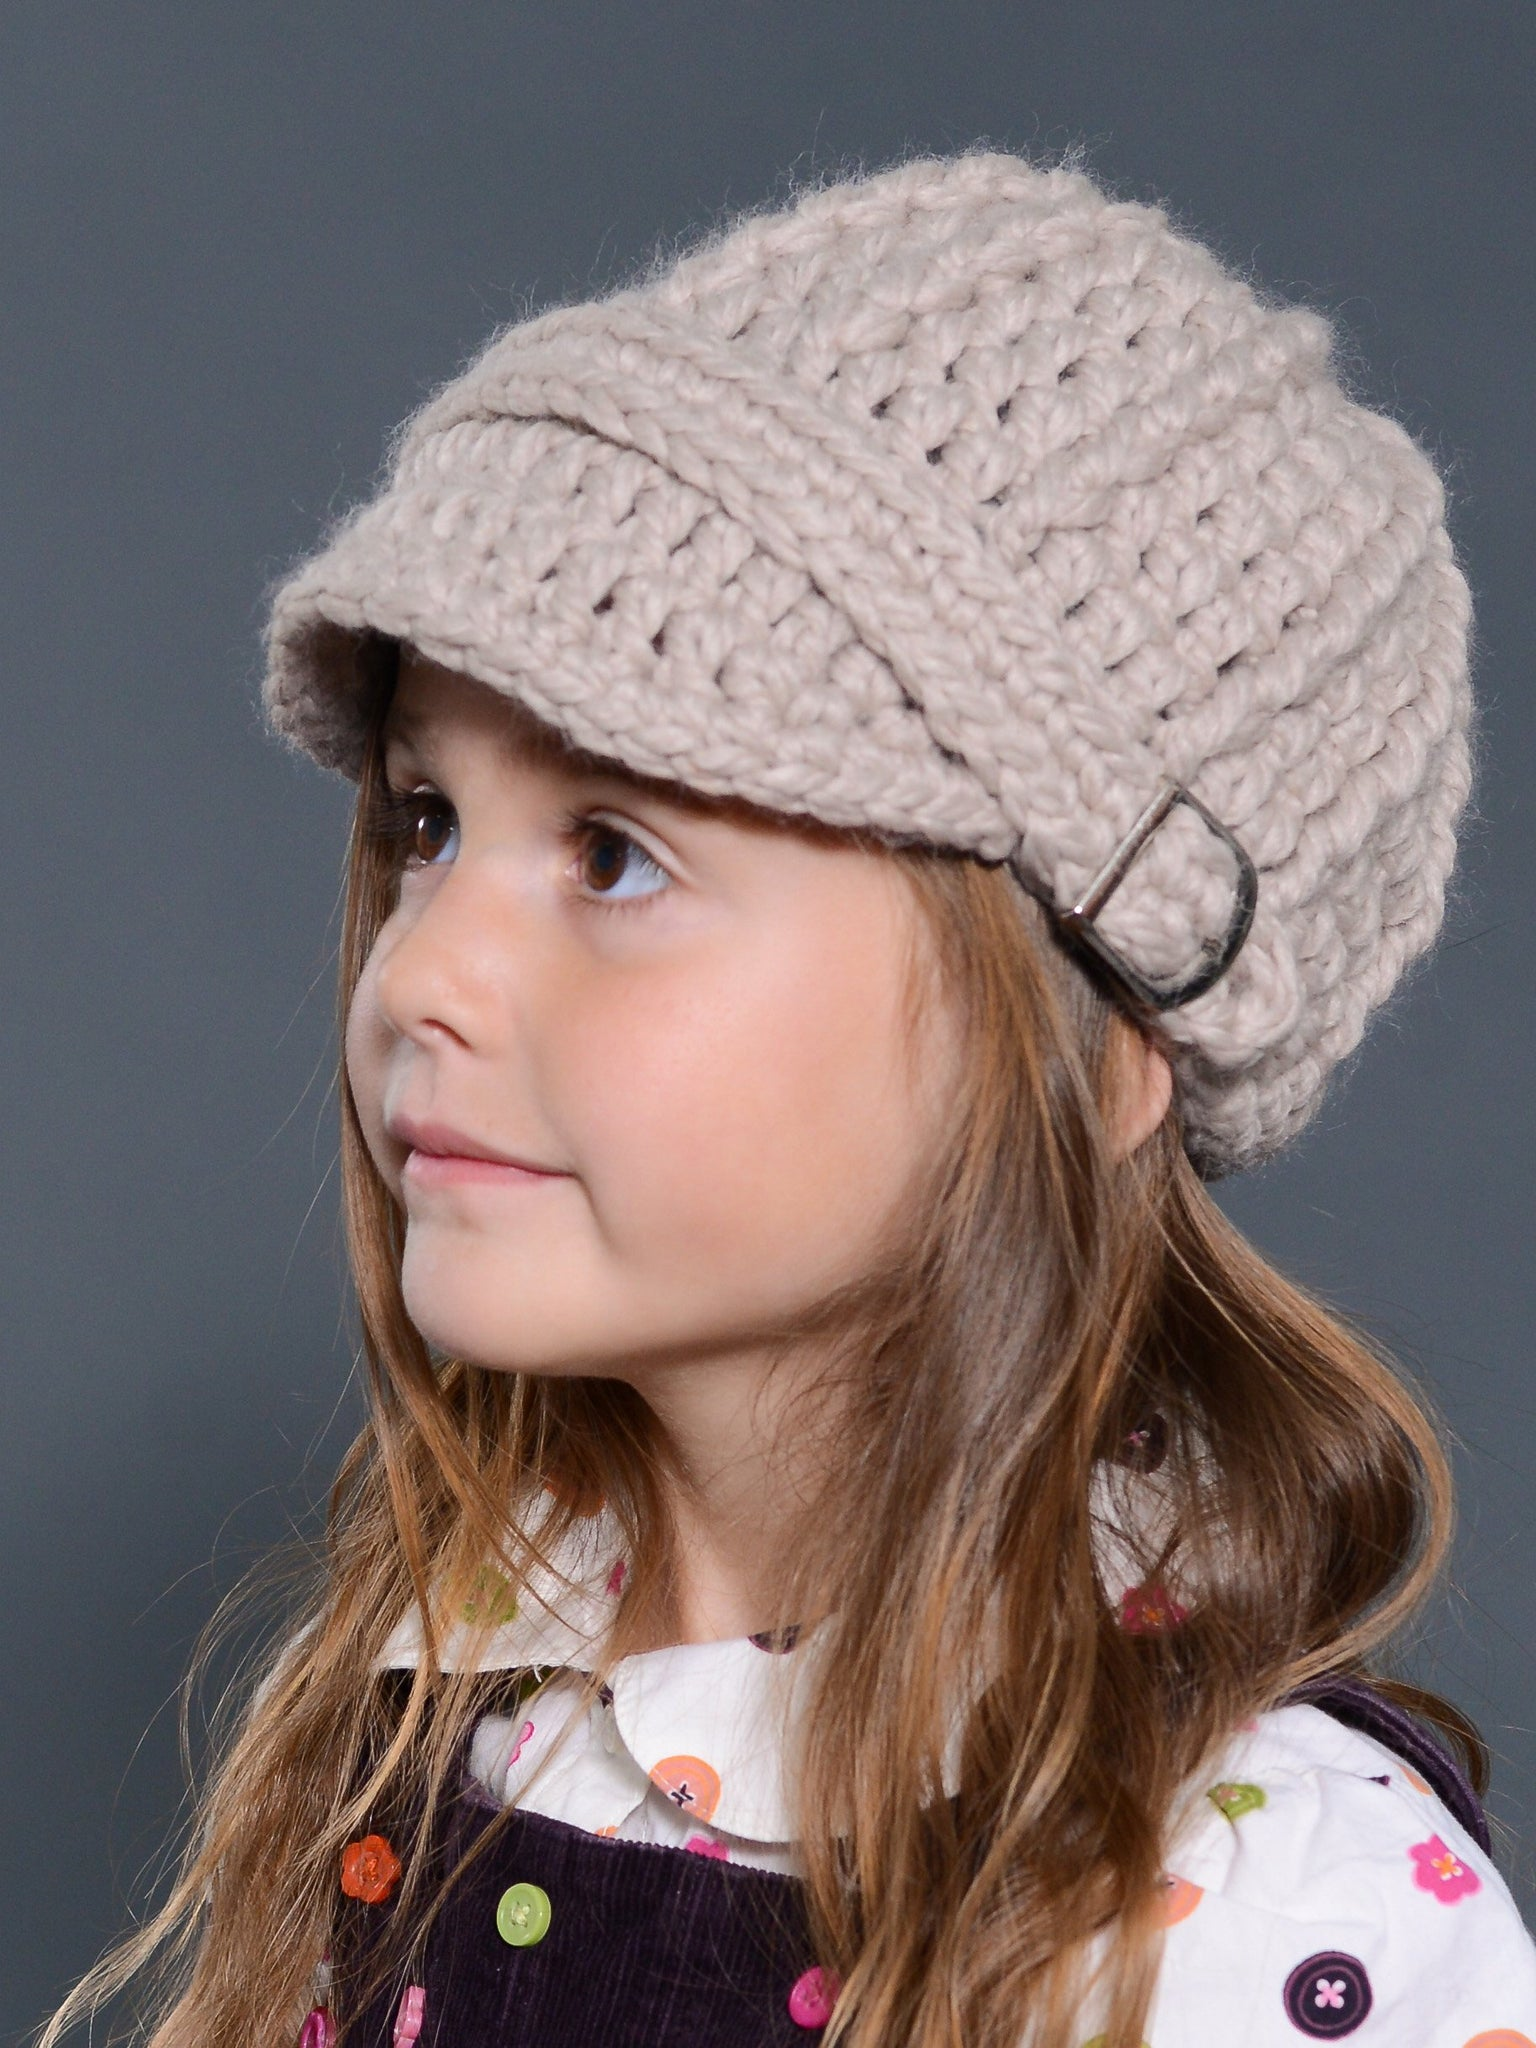 Linen buckle beanie winter hat by Two Seaside Babes